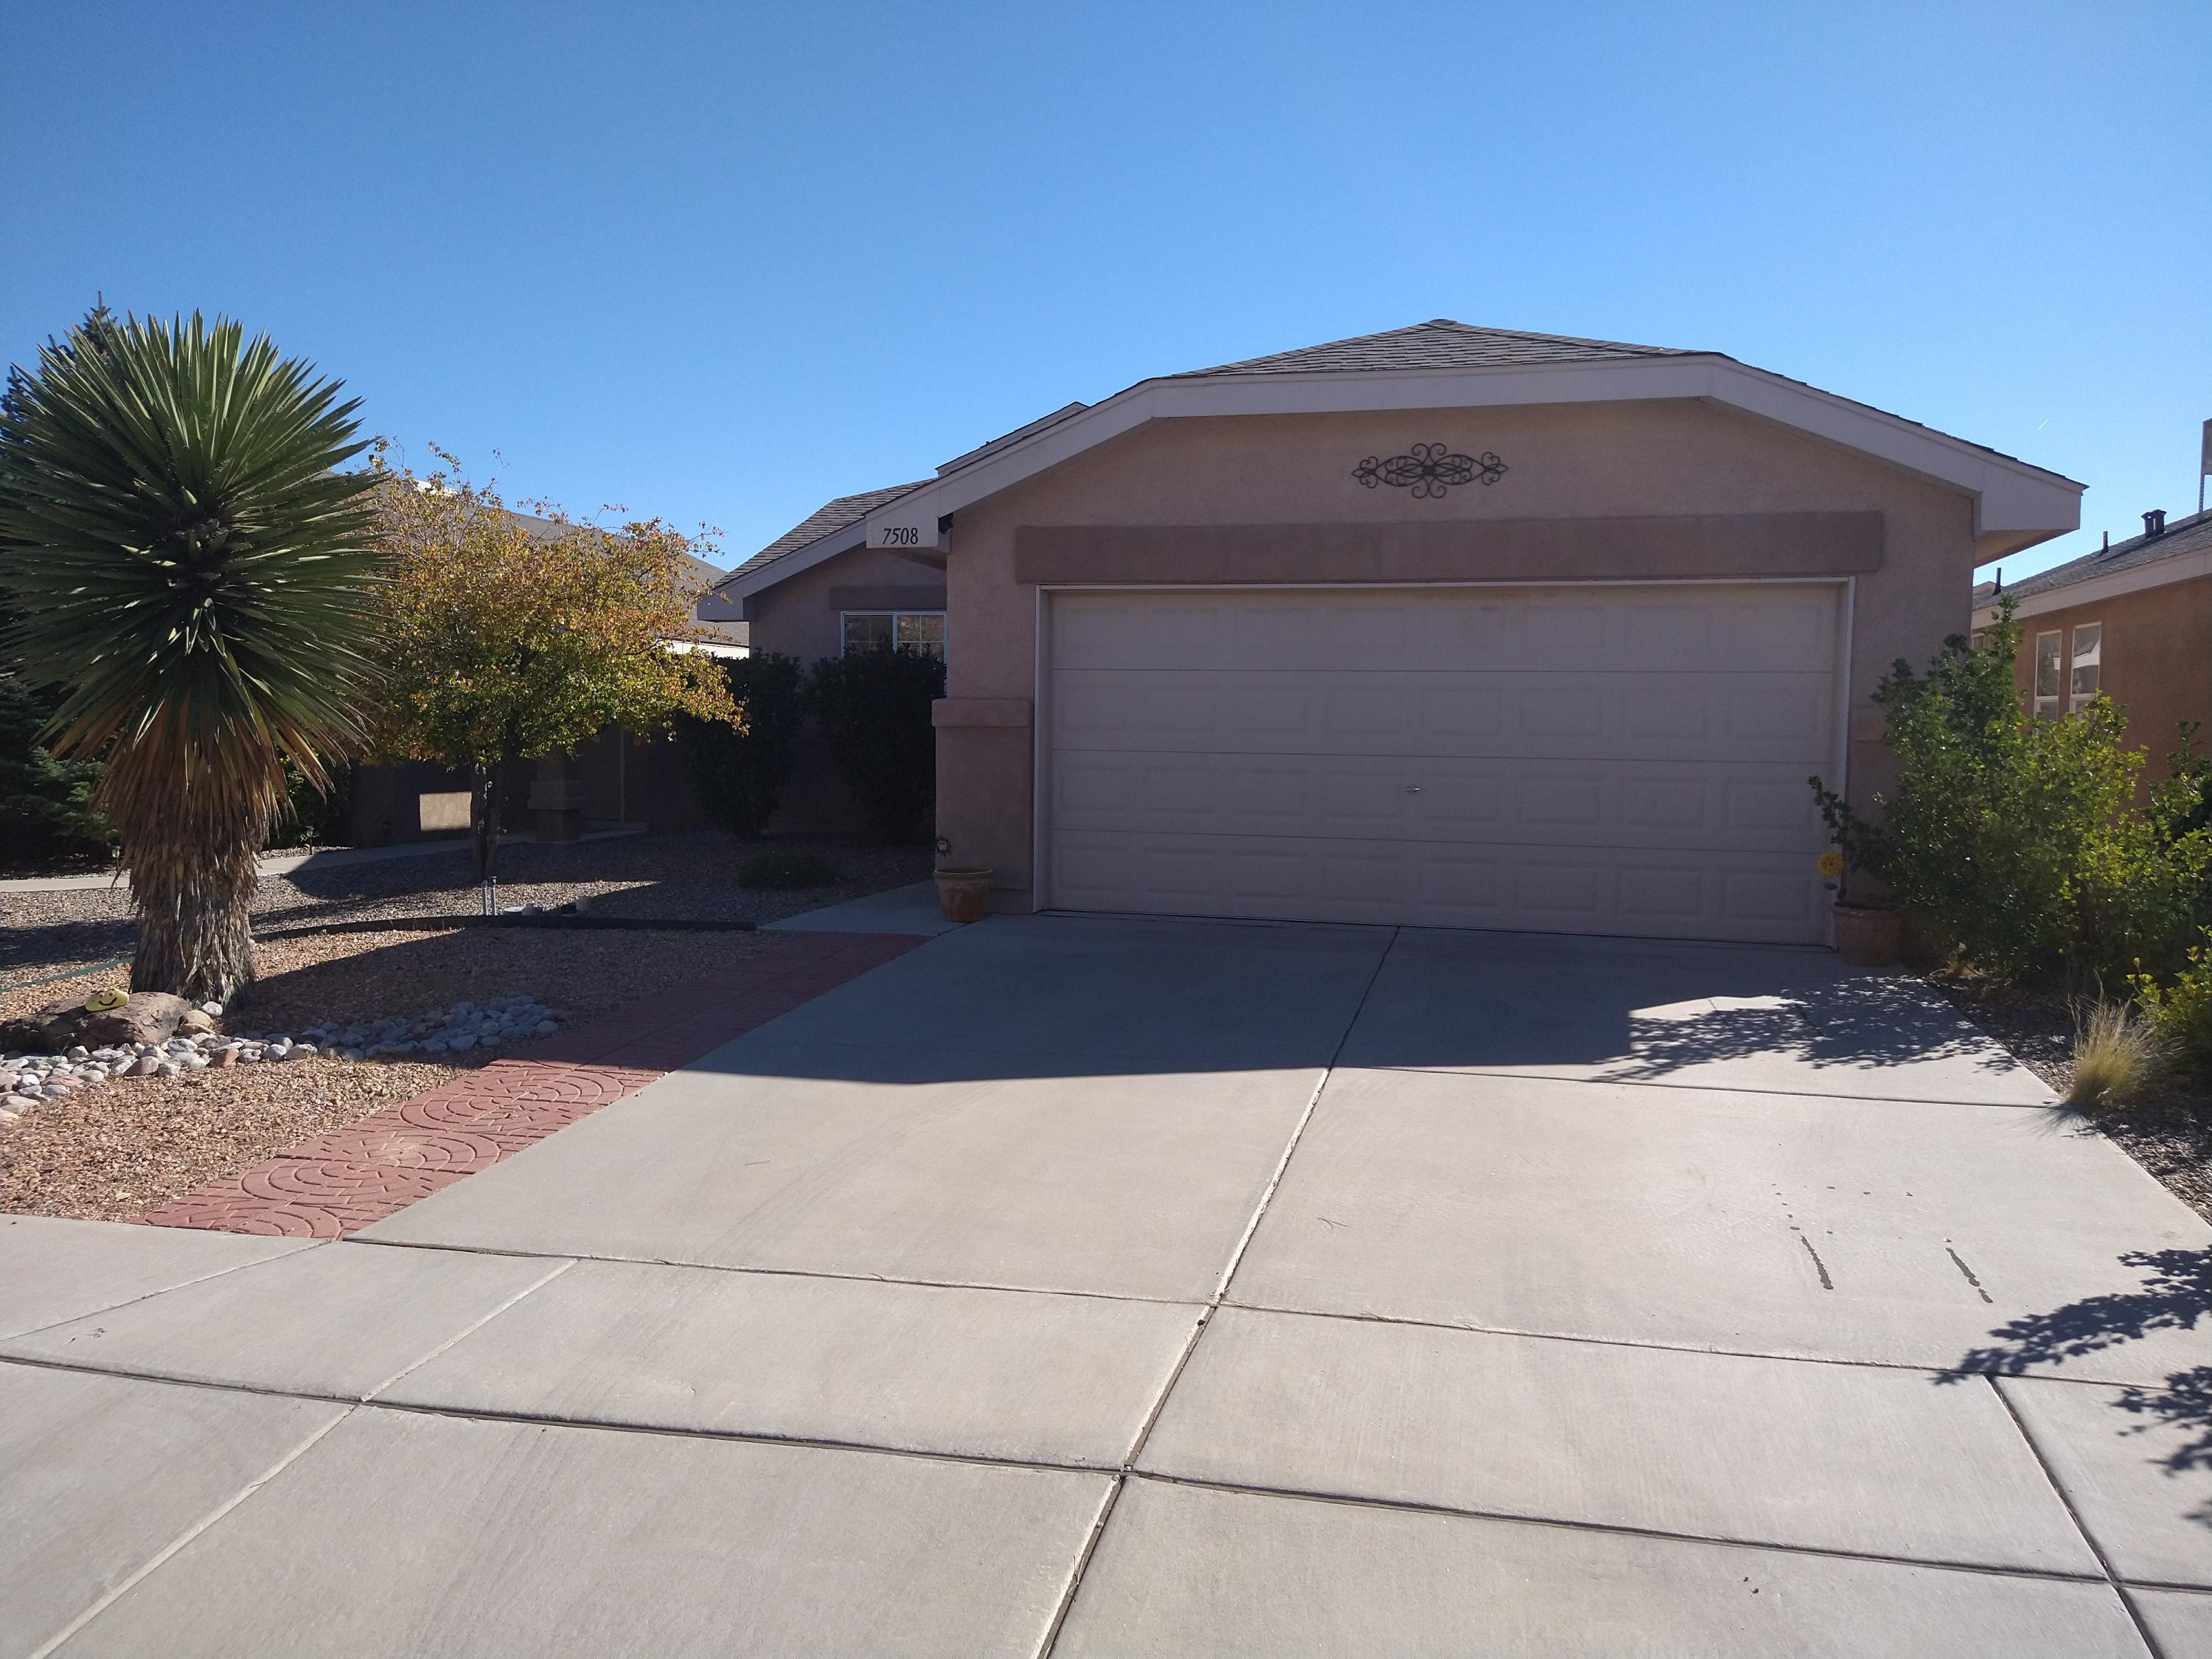 HURRY to this clean and neat single level home in a gorgeous planned community!  This well-loved home offers open spaces, arched architectural elements and cathedral ceilings.  Snuggle up this winter with friends and family before the cozy gas-log fireplace. Stay fit on the many paved walking paths throughout the community.  The 2.15 acre Pinon Point Park is just a stone's throw away!  This lush green park features a playground, picnic tables and a volleyball court. With nine public parks, a community center with inground pool and nearby schools, this is the perfect place to call home!